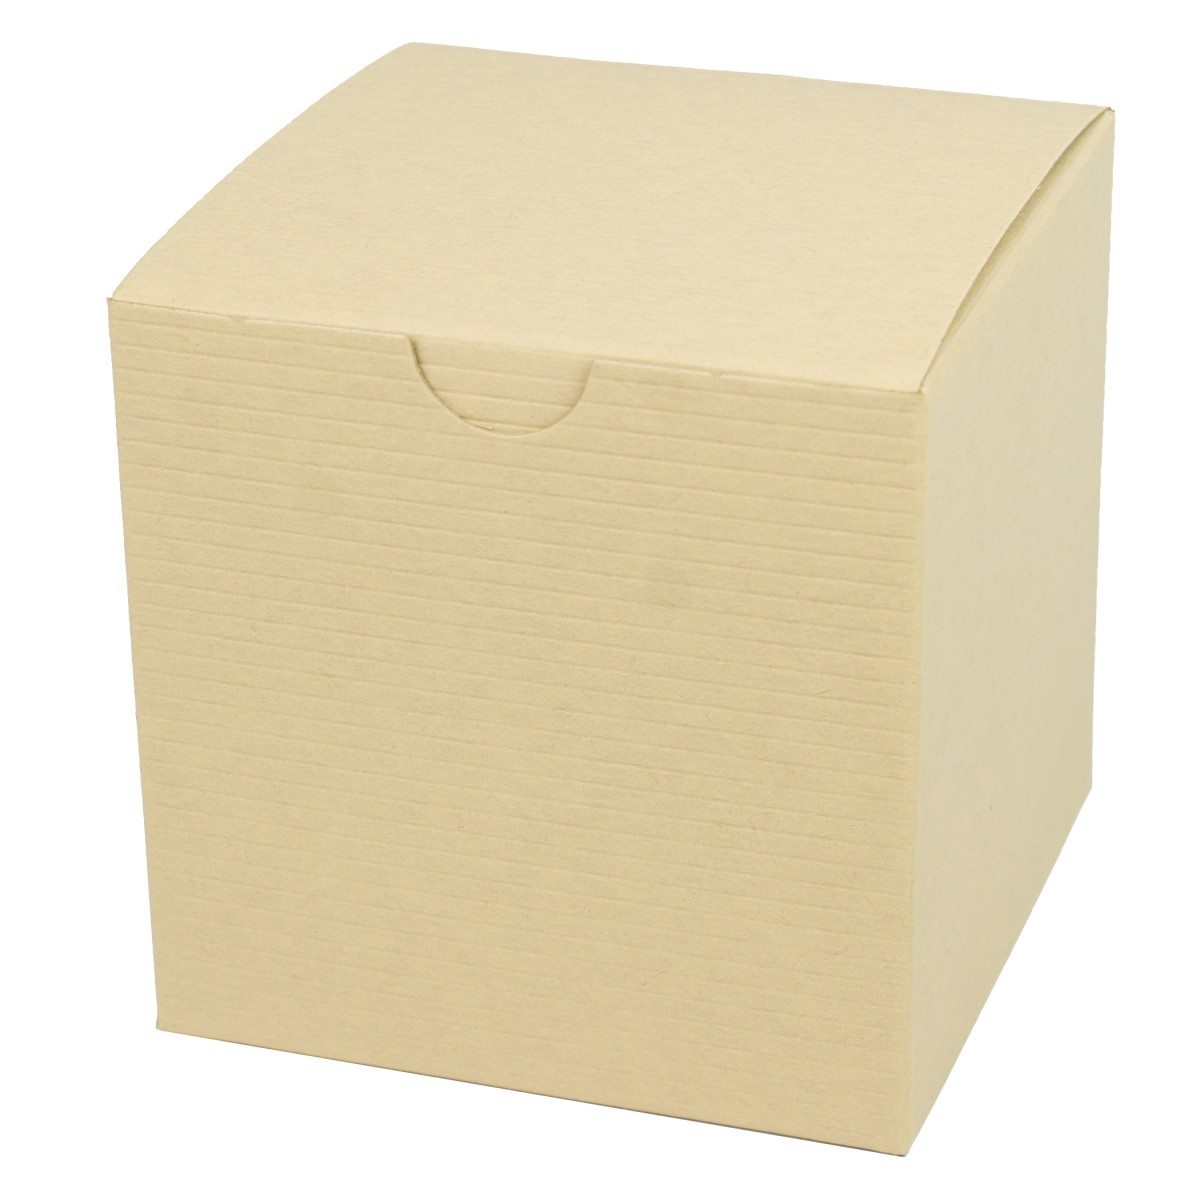 4 x 4 x 4 OATMEAL TINTED TUCK-TOP GIFT BOXES